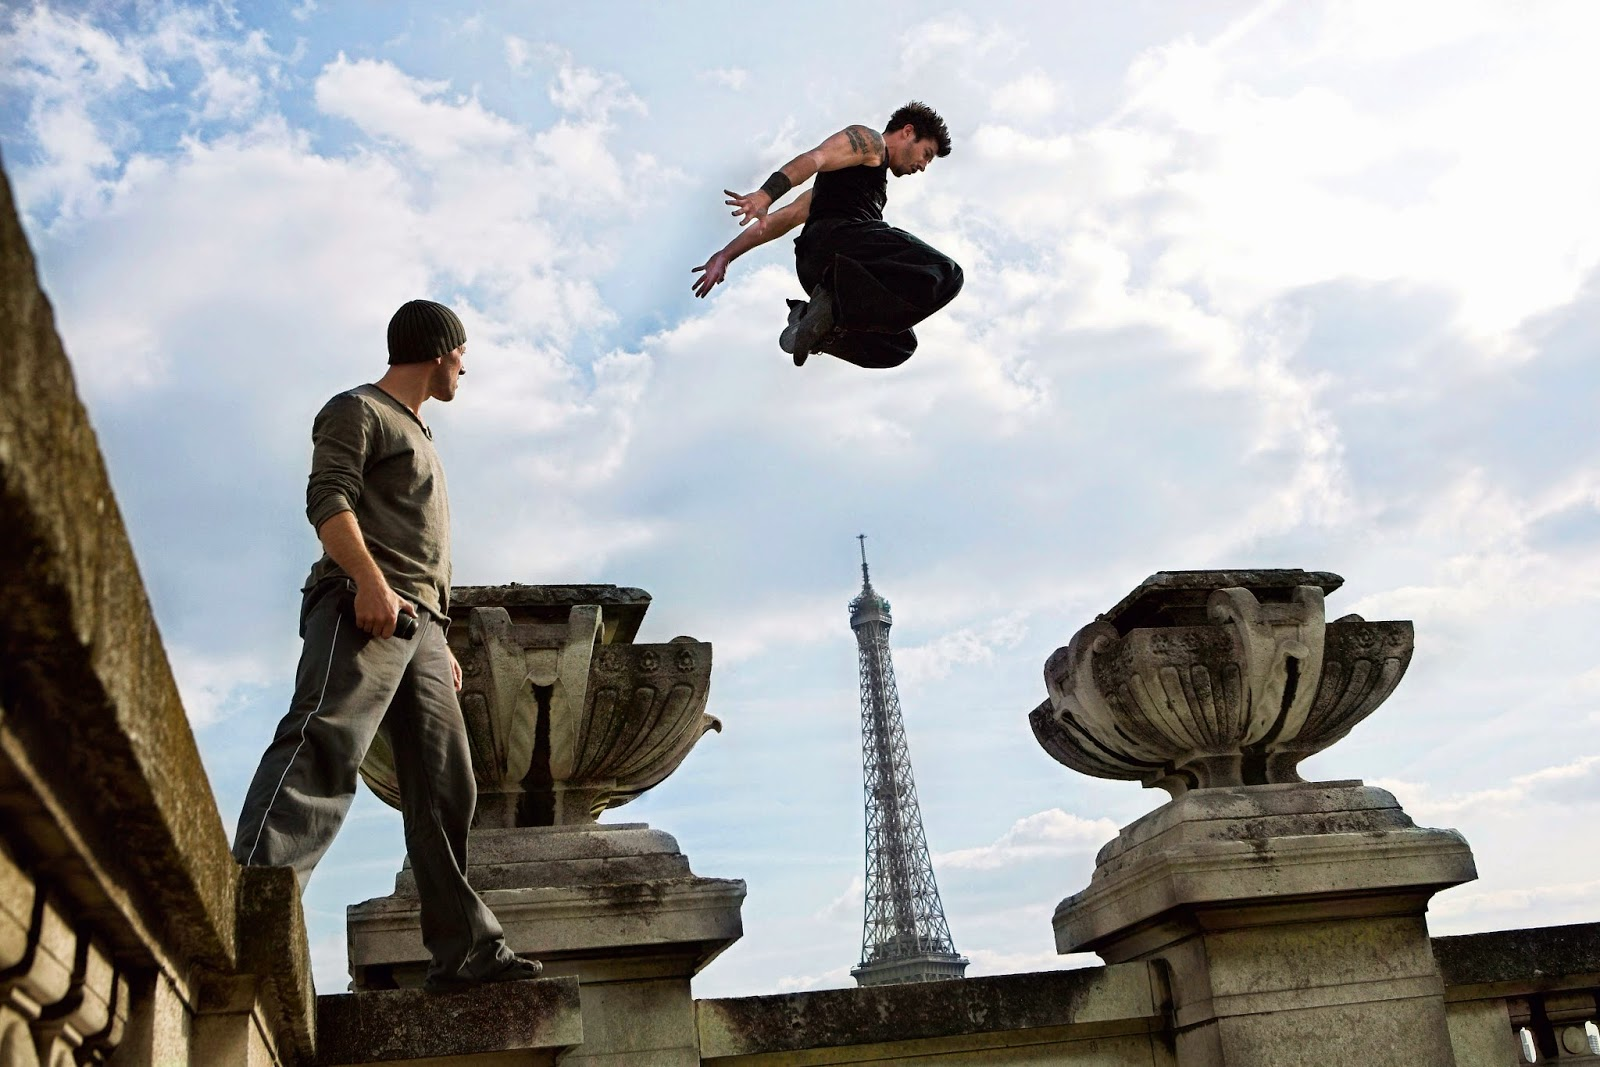 parkour founder david belle district 13 movie photo images pictures